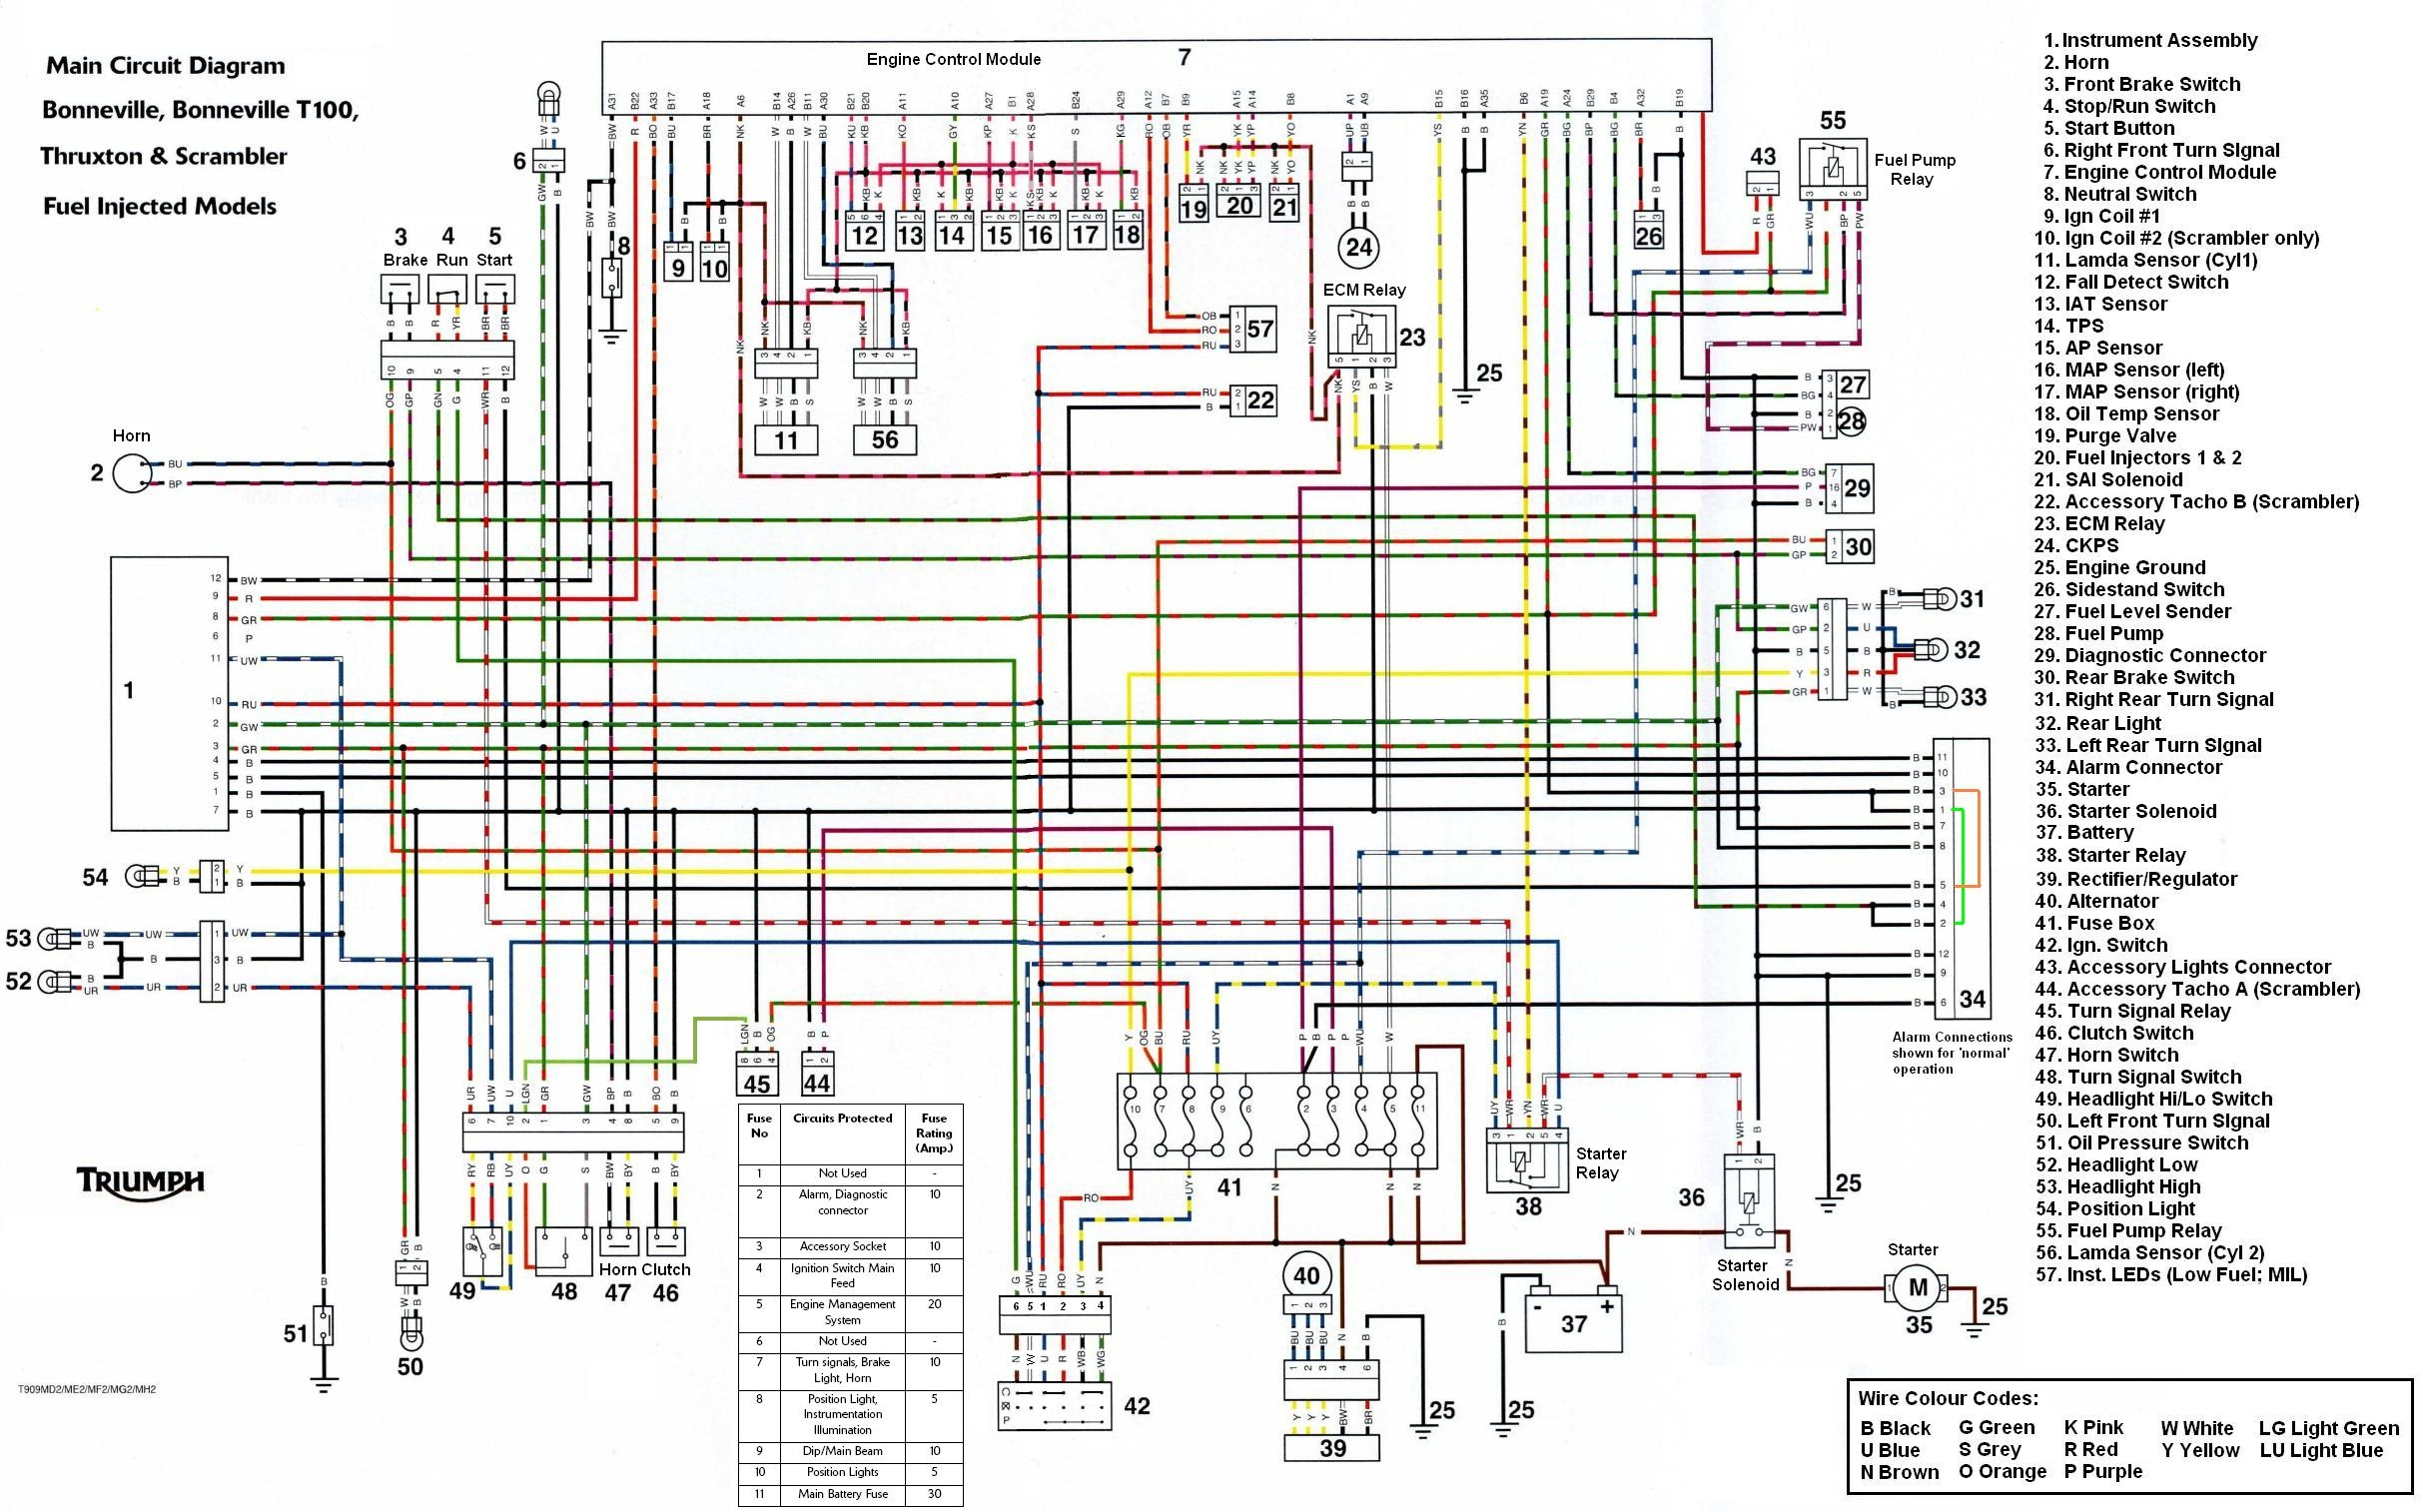 480 Vac Wiring Diagram Free Download Schematic Library Jacuzzi Bathtub Suzuki Ts 250 X Simple 1979 Triumph